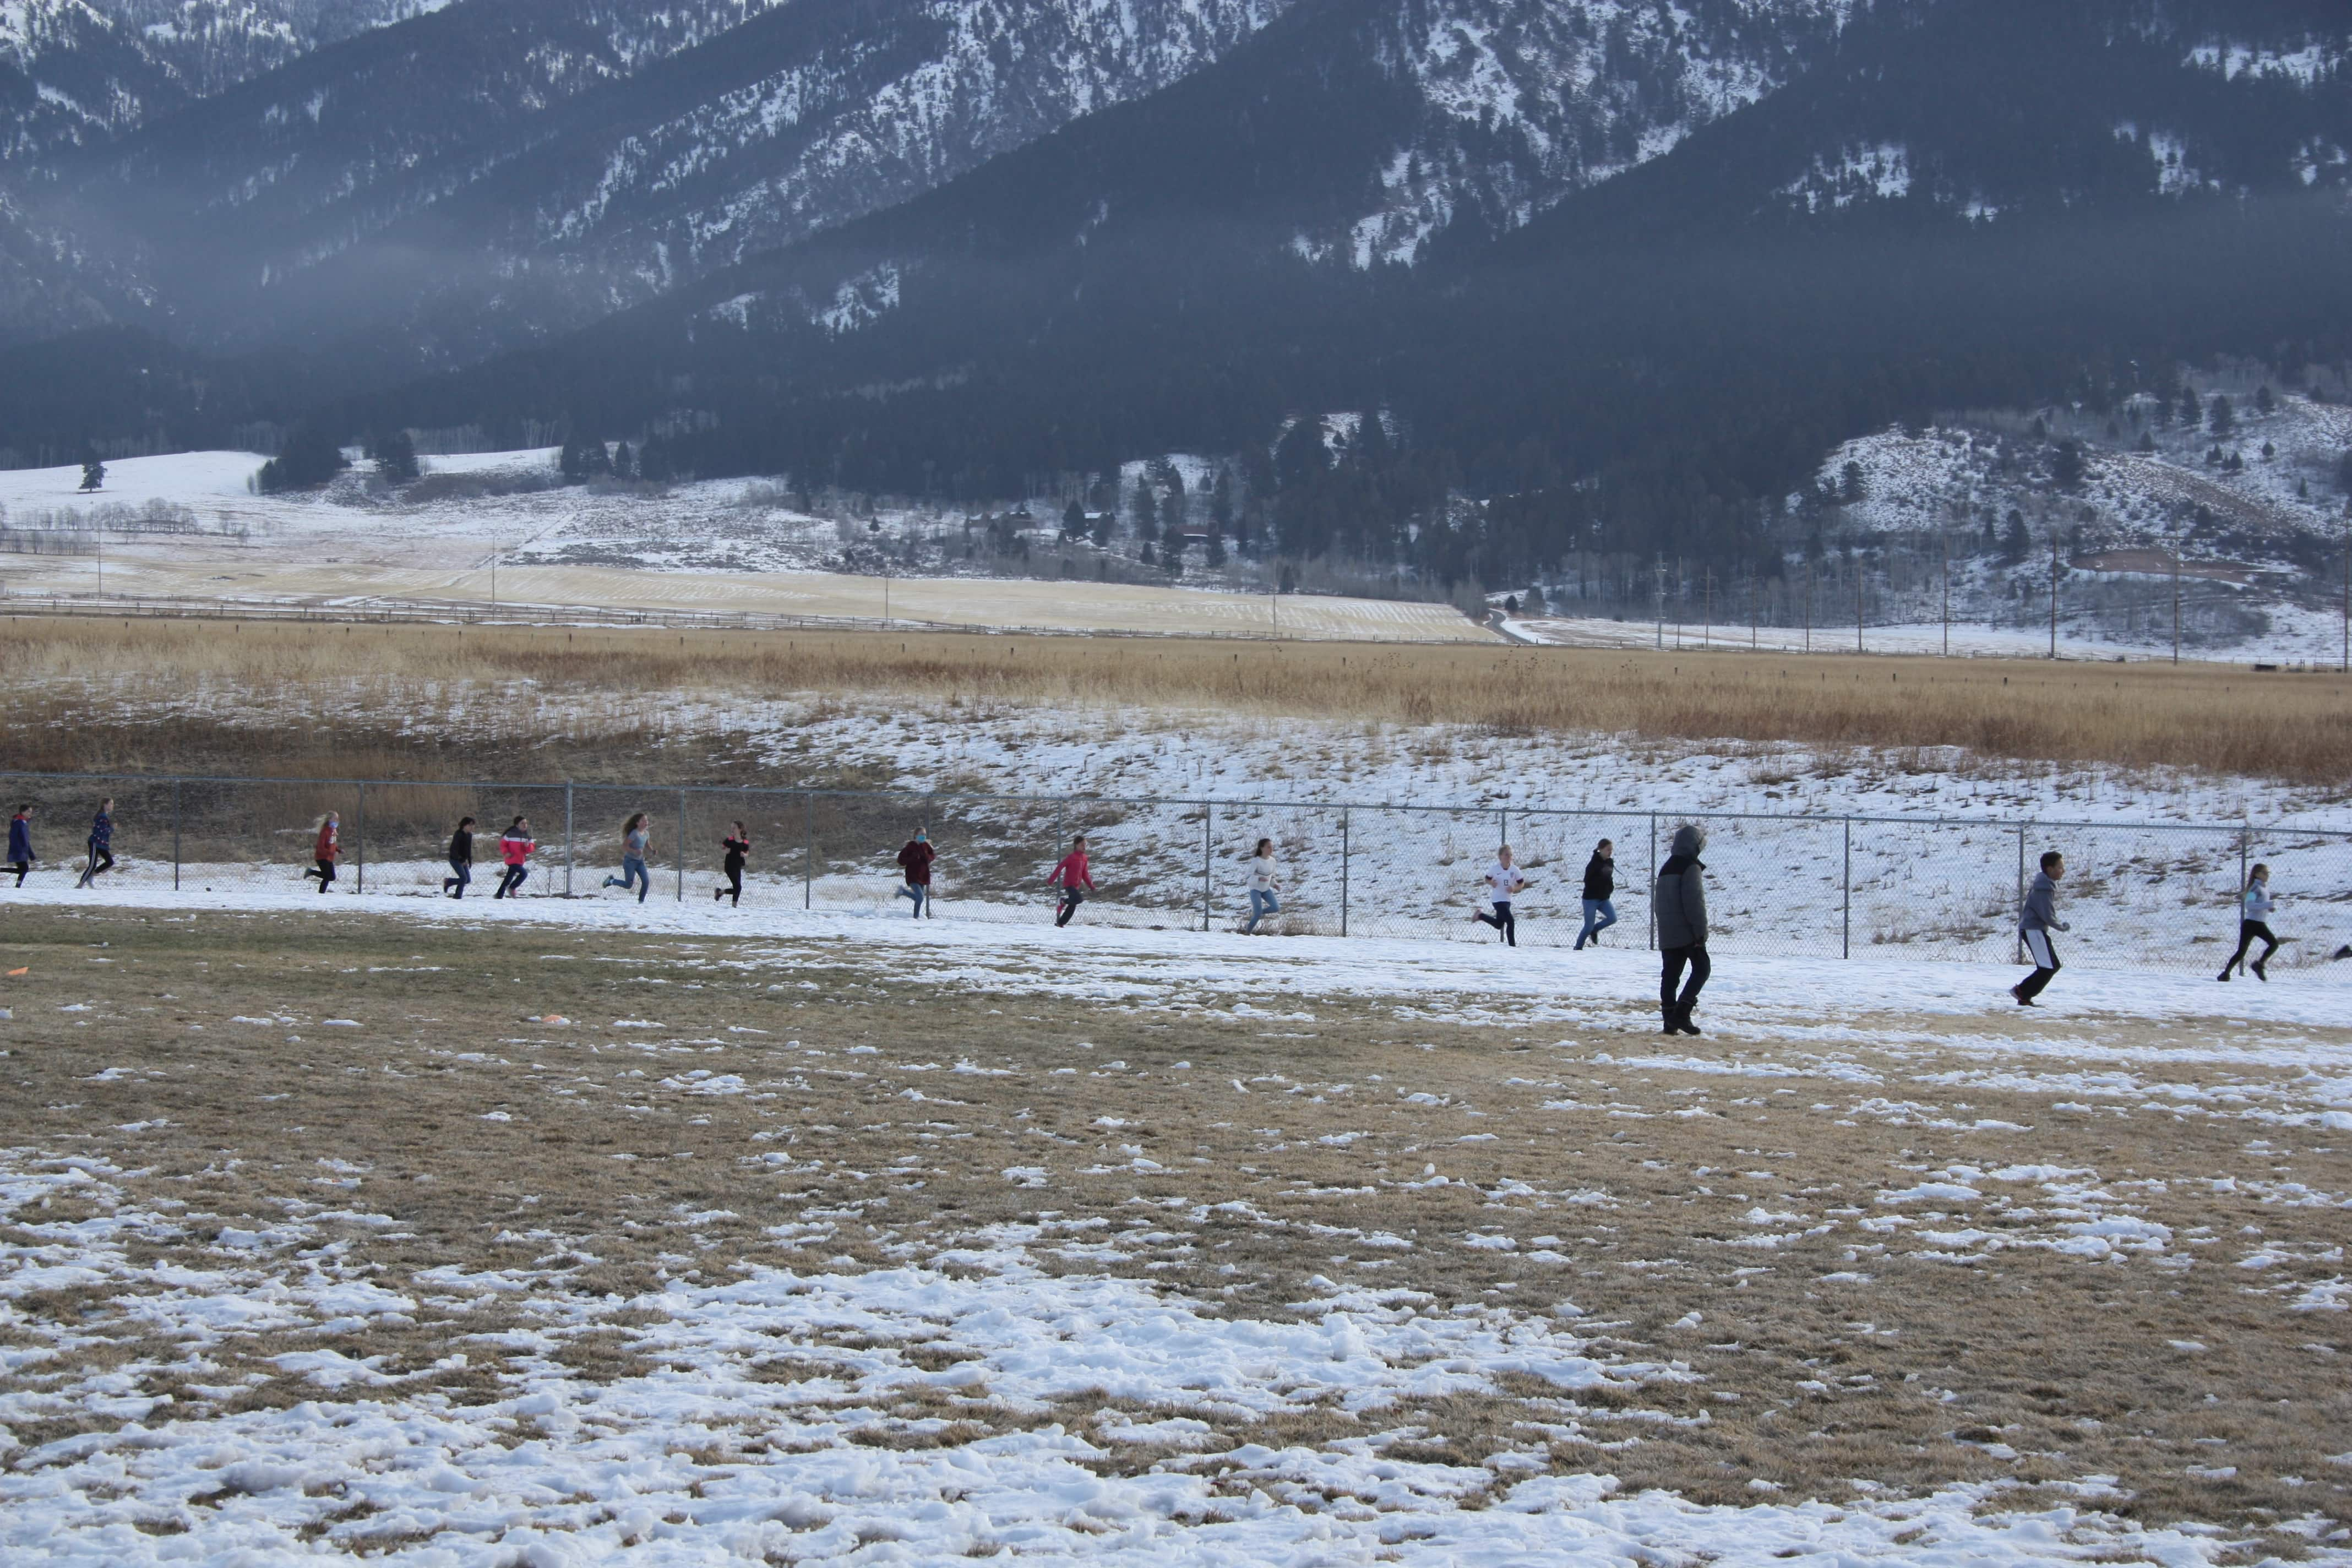 Distant view of the turkey trot in progress